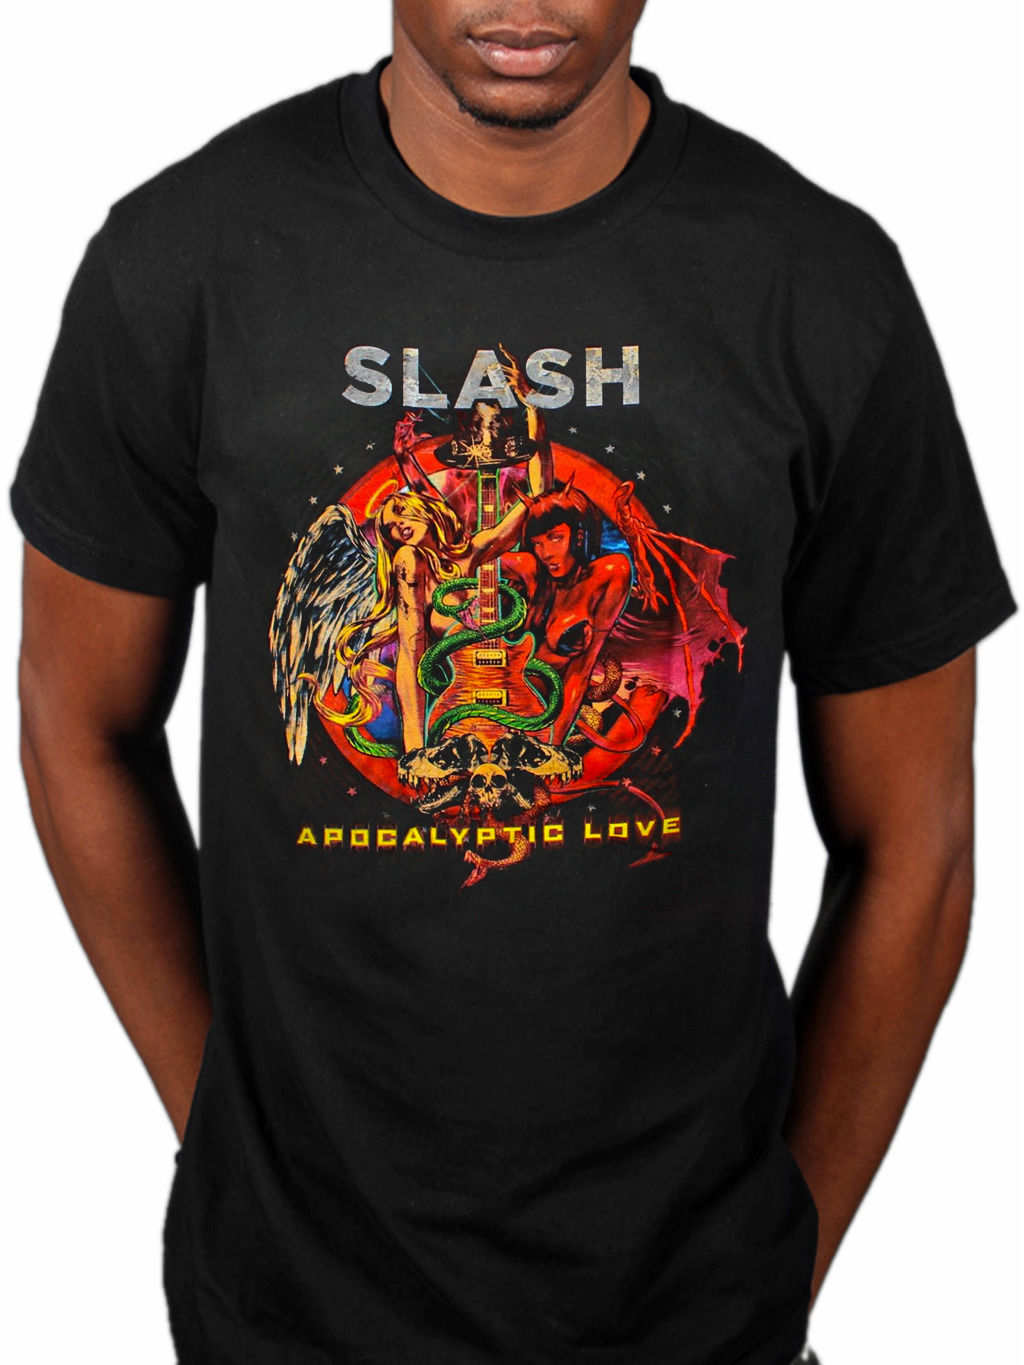 Slash Apocalyptic Love T-Shirt World On Fire Made In Stoke R Amp FNR